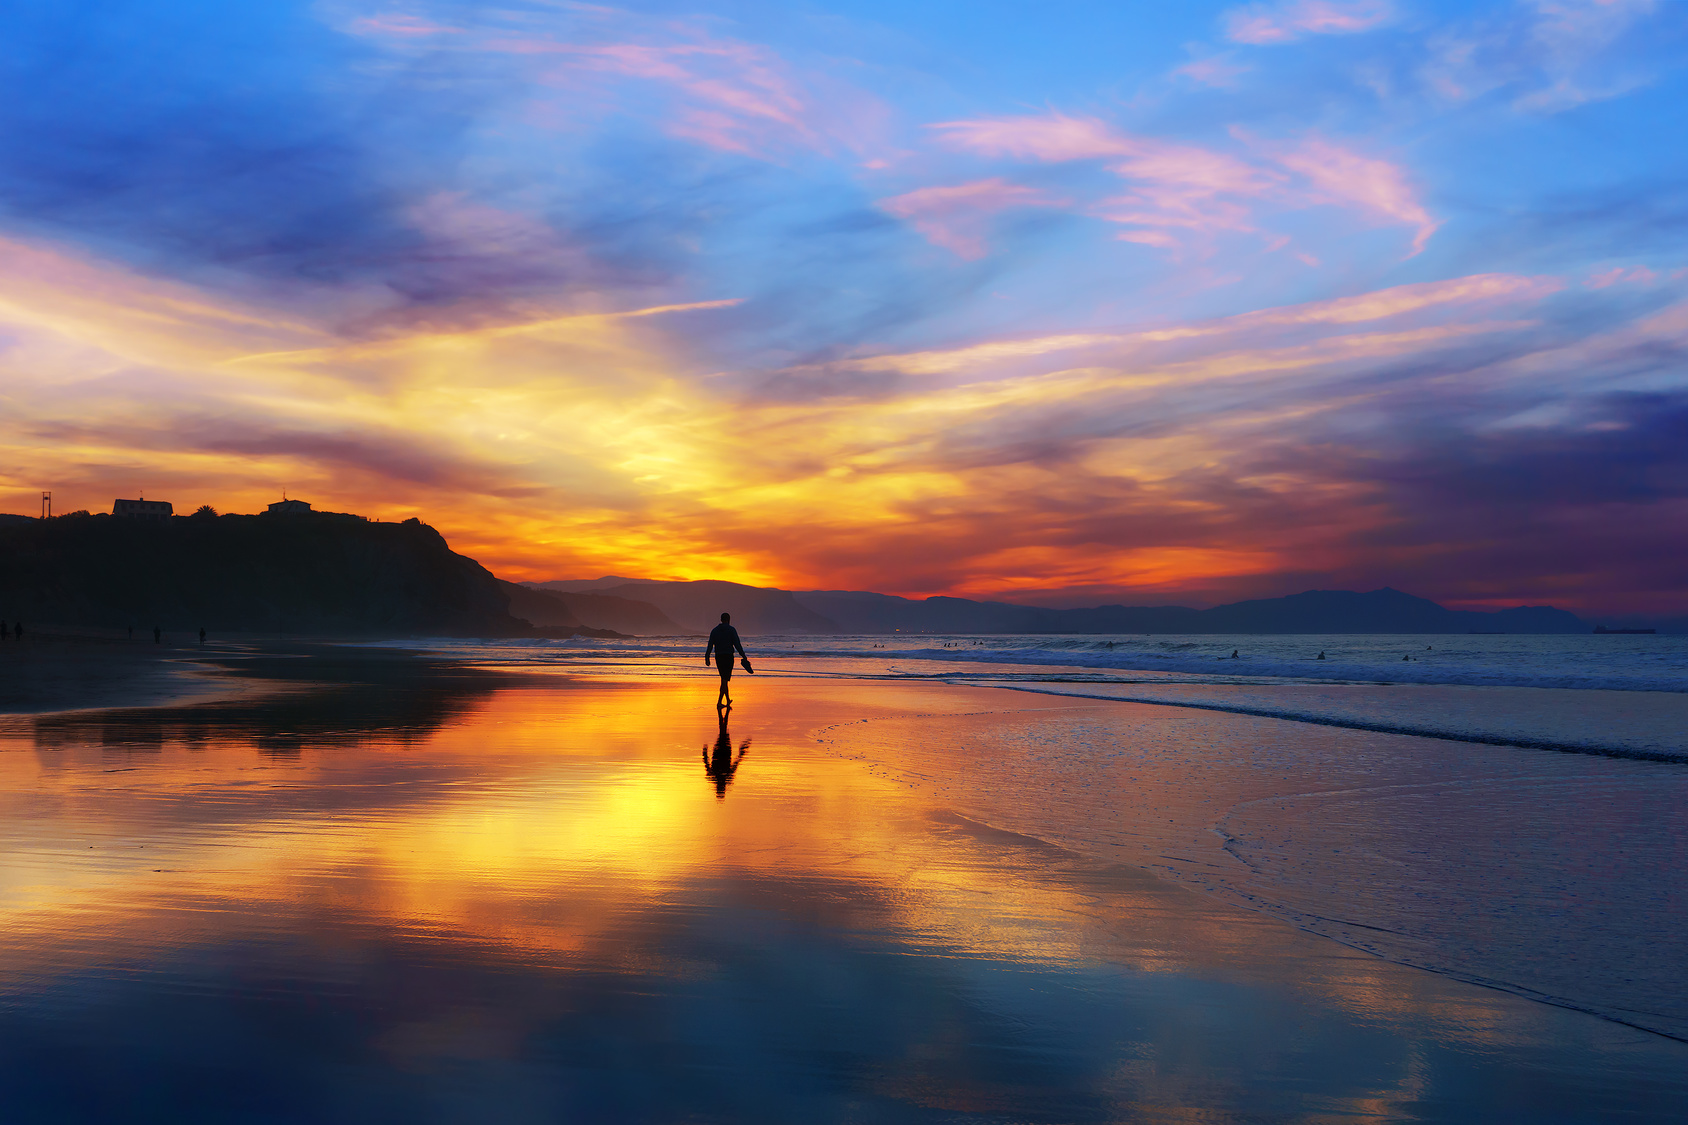 man walking on the beach at the sunset